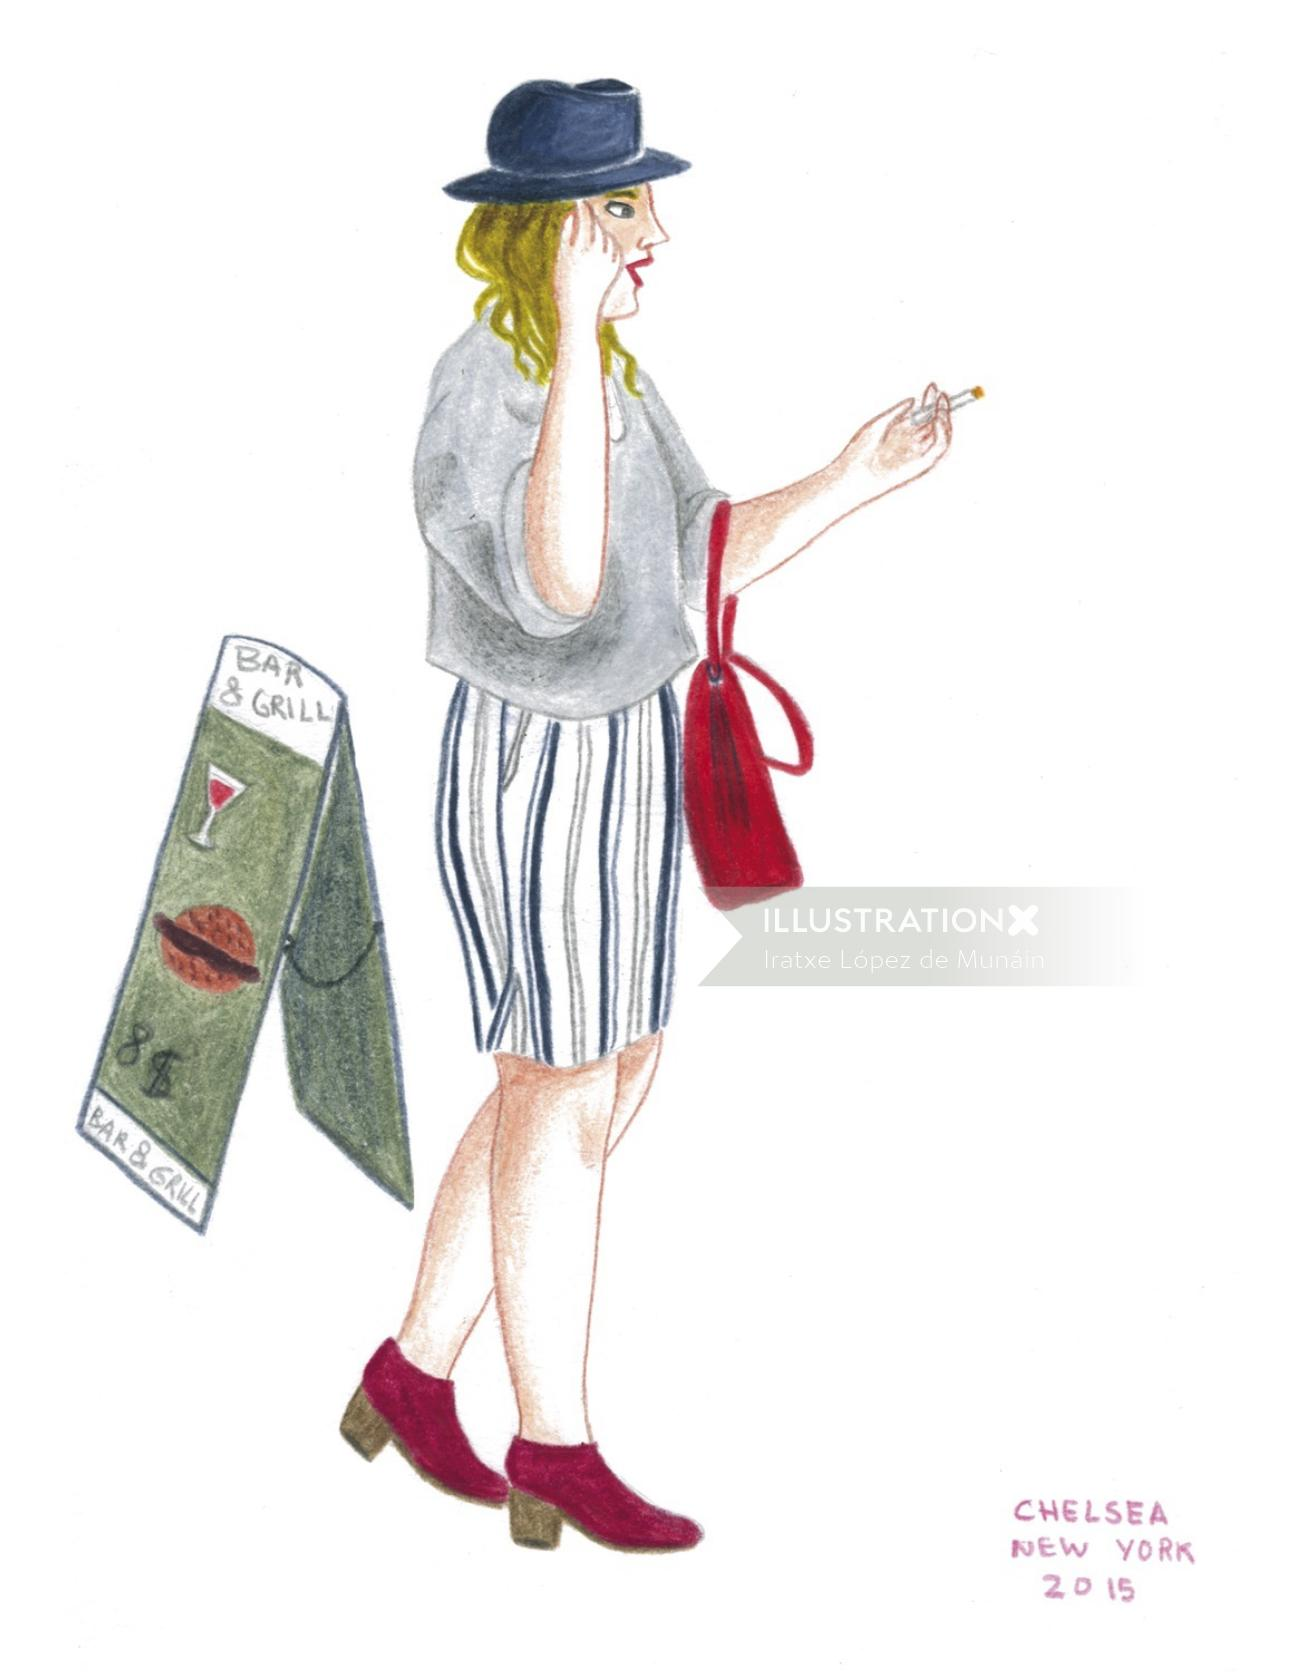 Illustration of lifestyle character